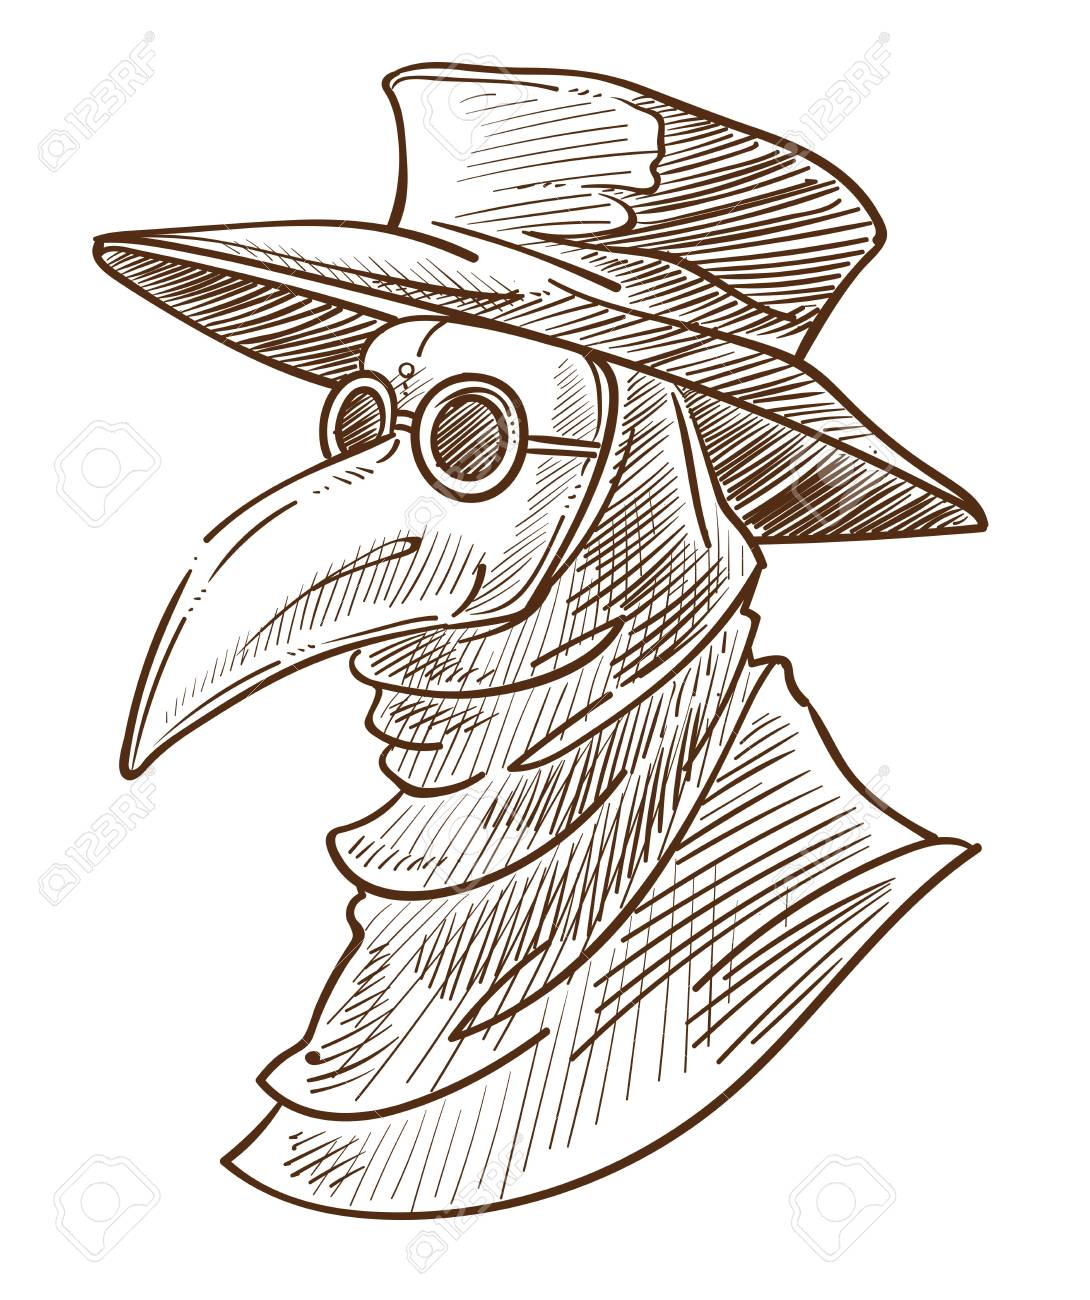 Medieval Death Symbol Plague Doctor Mask Isolated Sketch Crown Royalty Free Cliparts Vectors And Stock Illustration Image 124687622